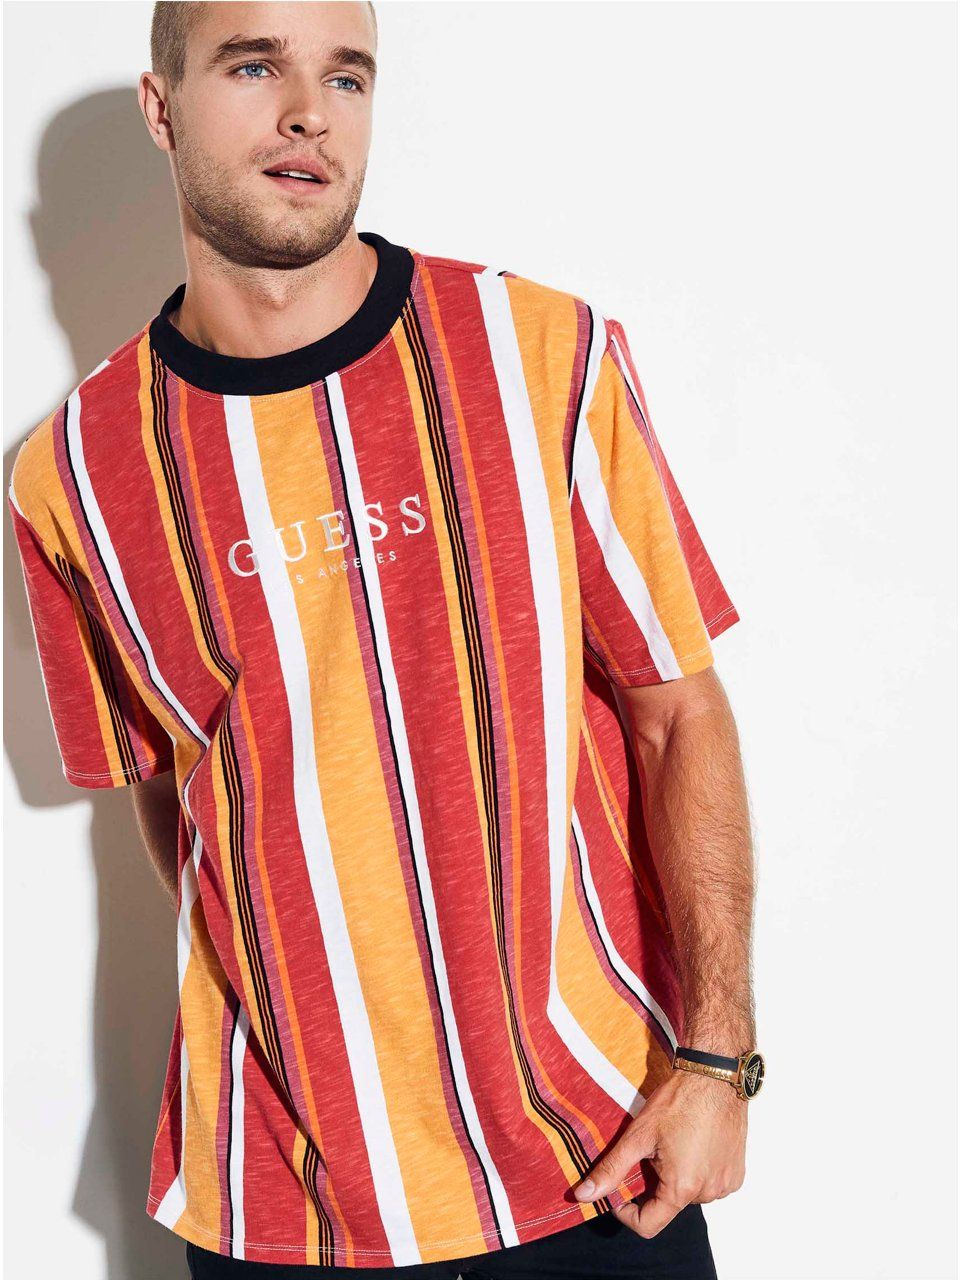 c6040eae63 GUESS Originals Oversized Sayer Striped Tee in 2019 | Products ...